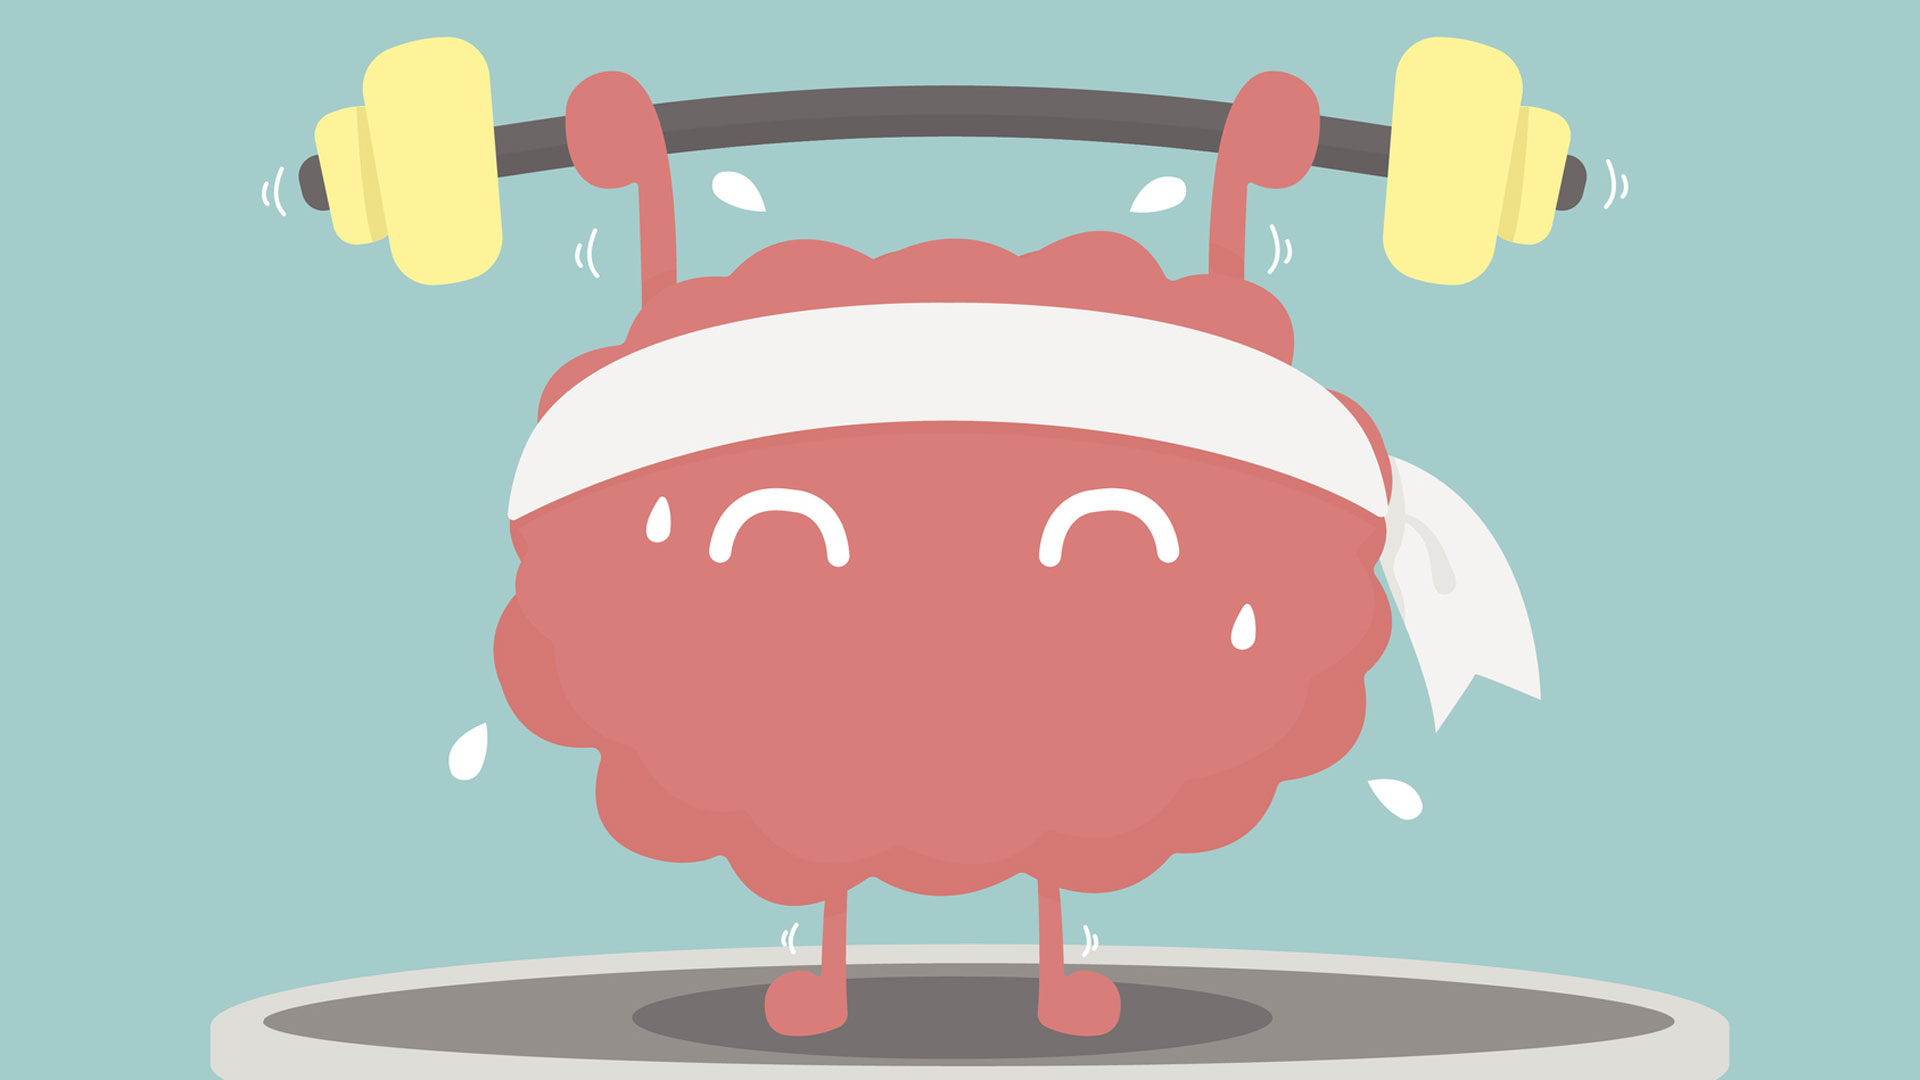 Brains clipart excercise #11